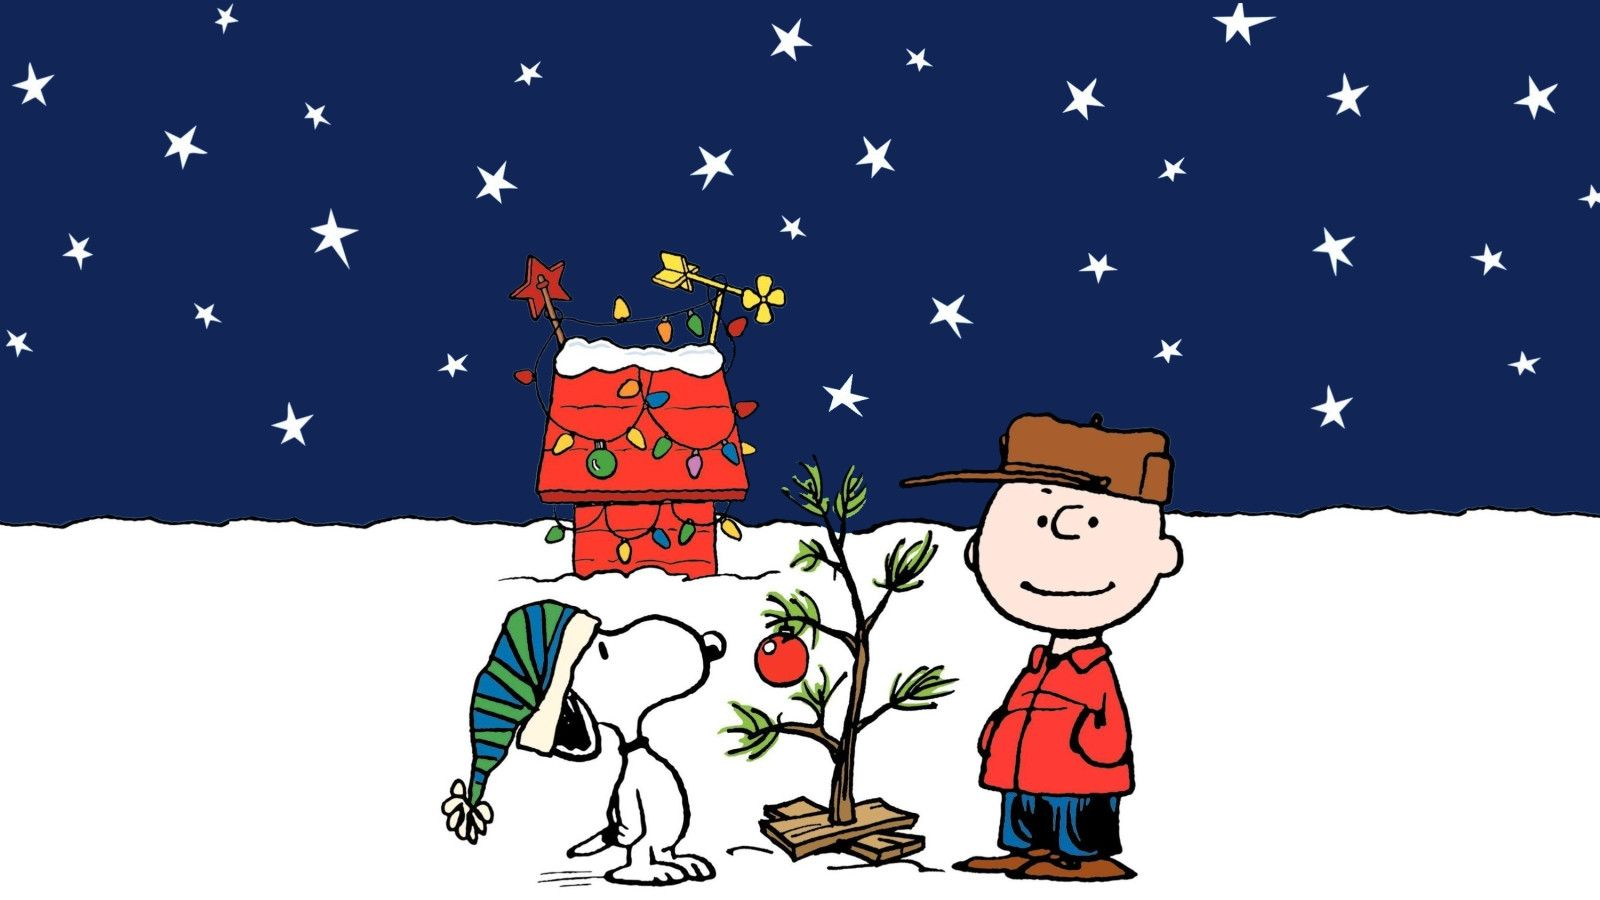 peanuts christmas wallpaper peanuts_christmas_desktop_1600x900_hd wallpaper - Peanuts Christmas